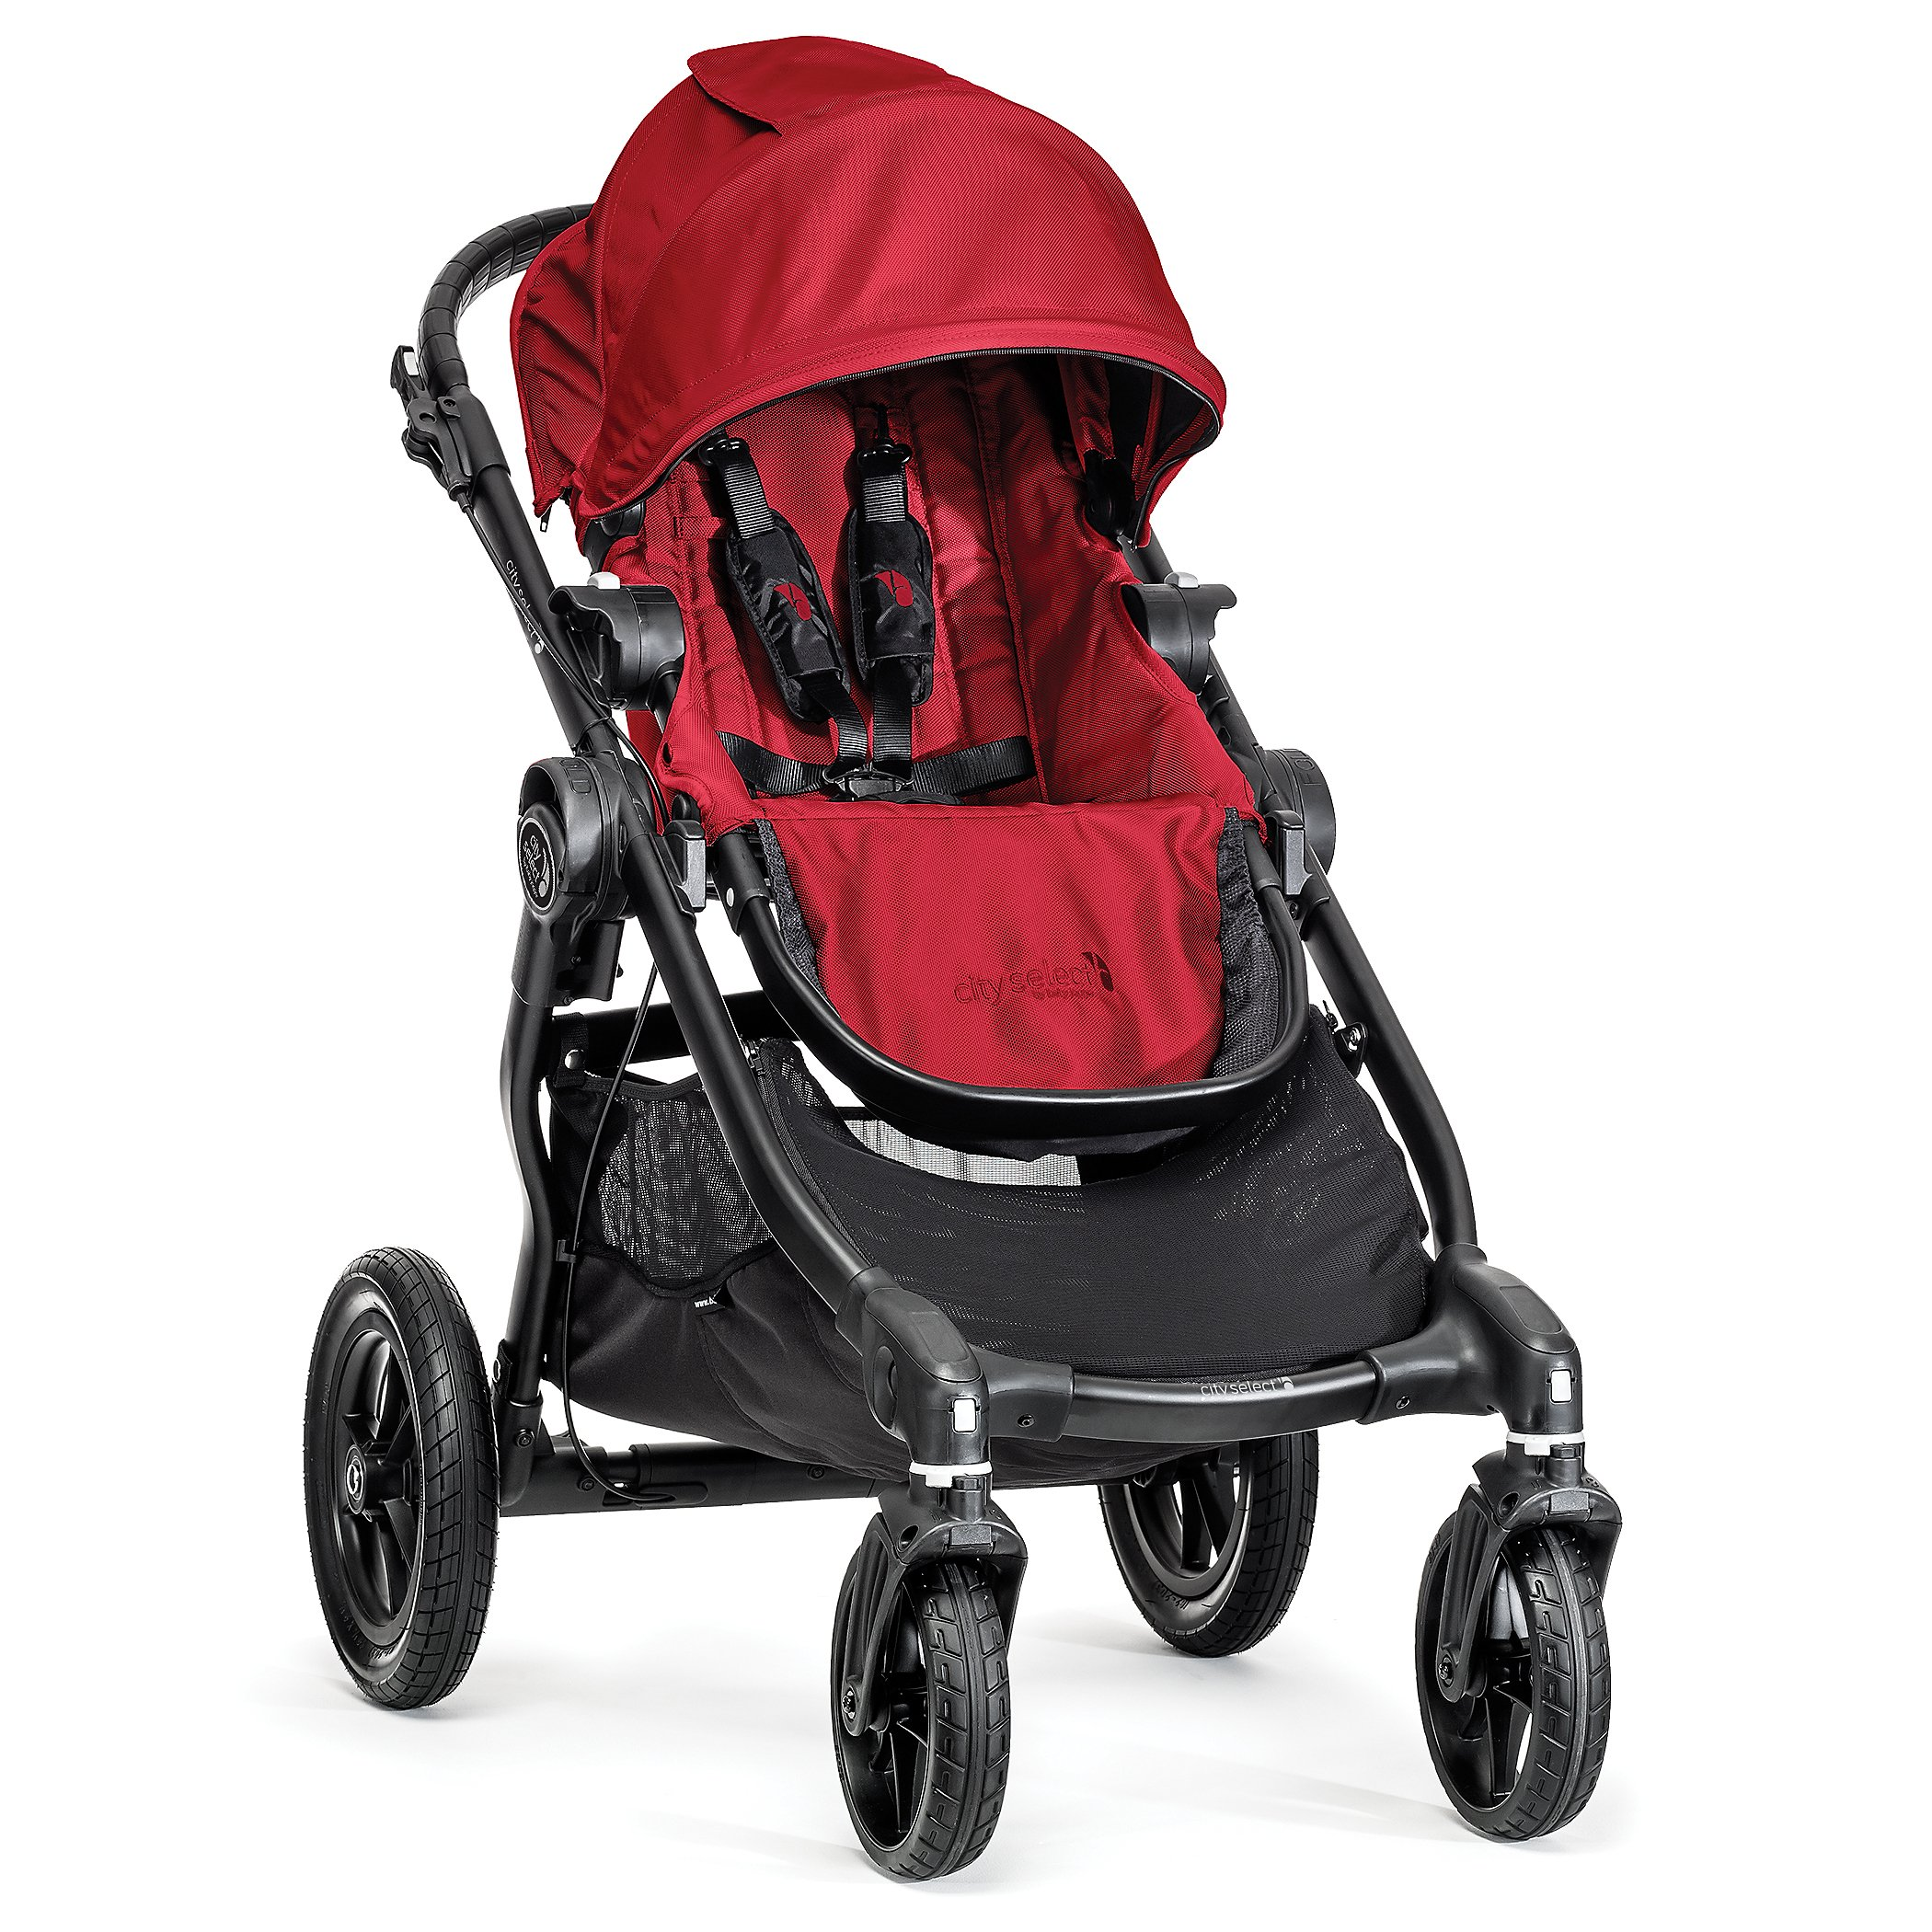 Baby Jogger 2018 City Select Stroller, Red